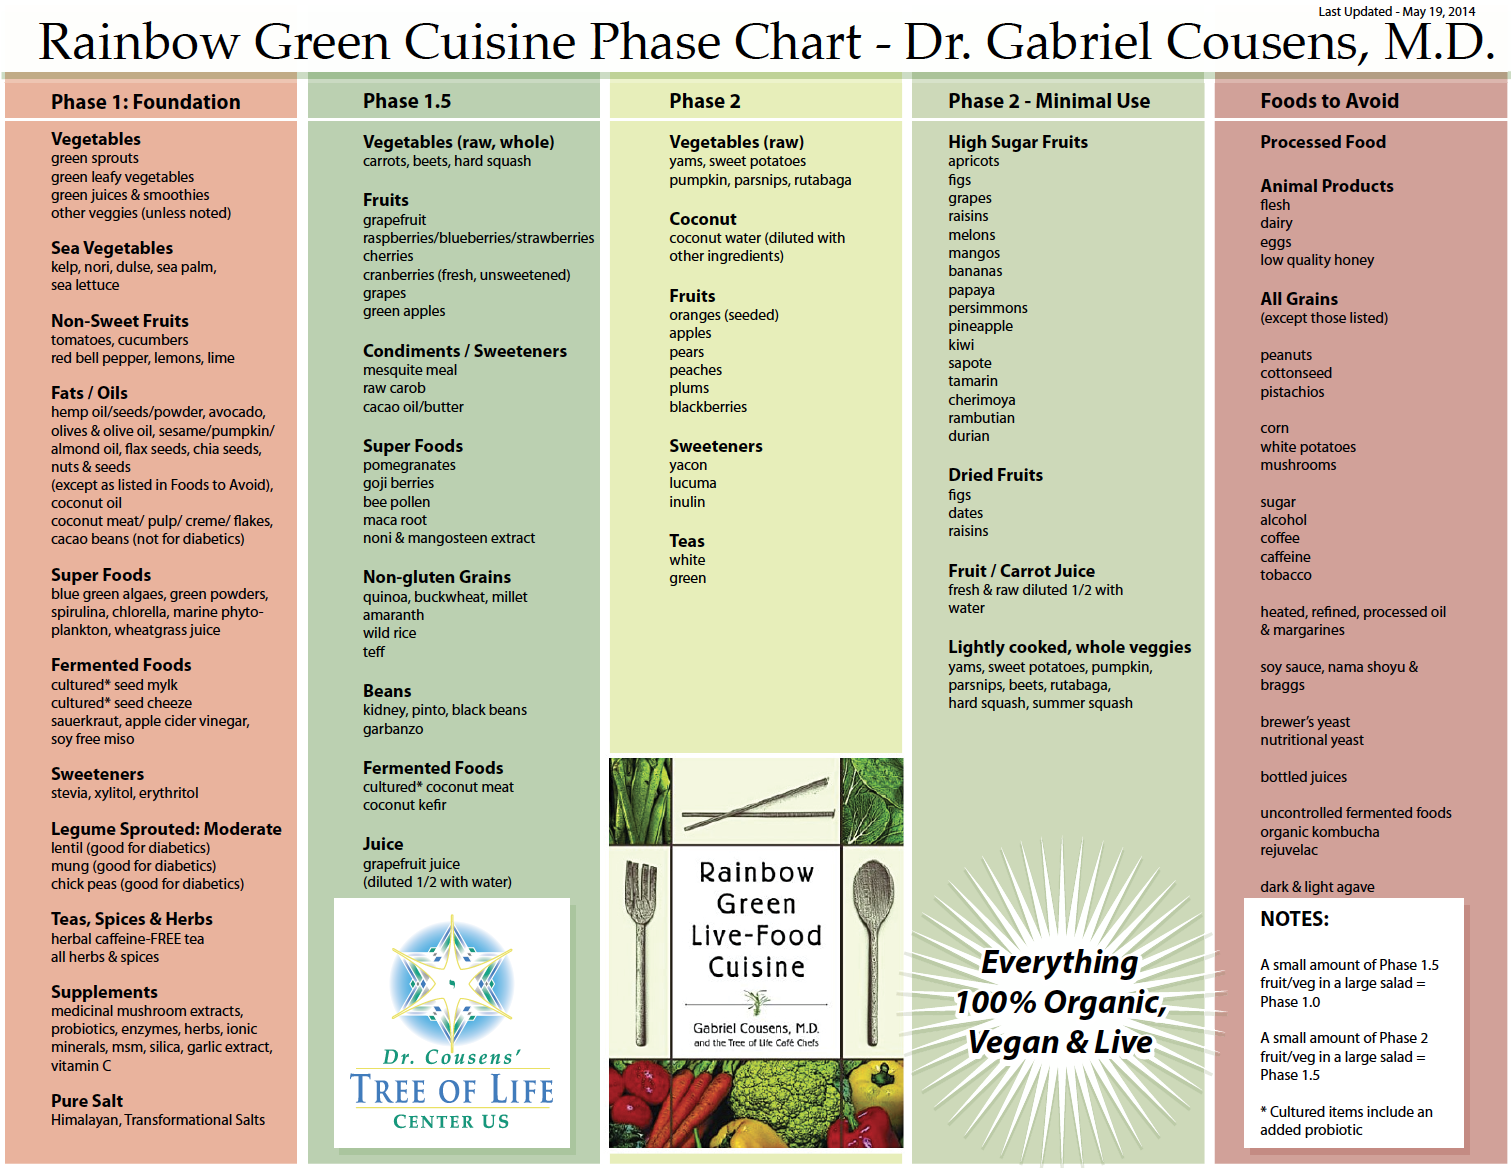 Rainbow Green Food Phases Chart - 2014.png